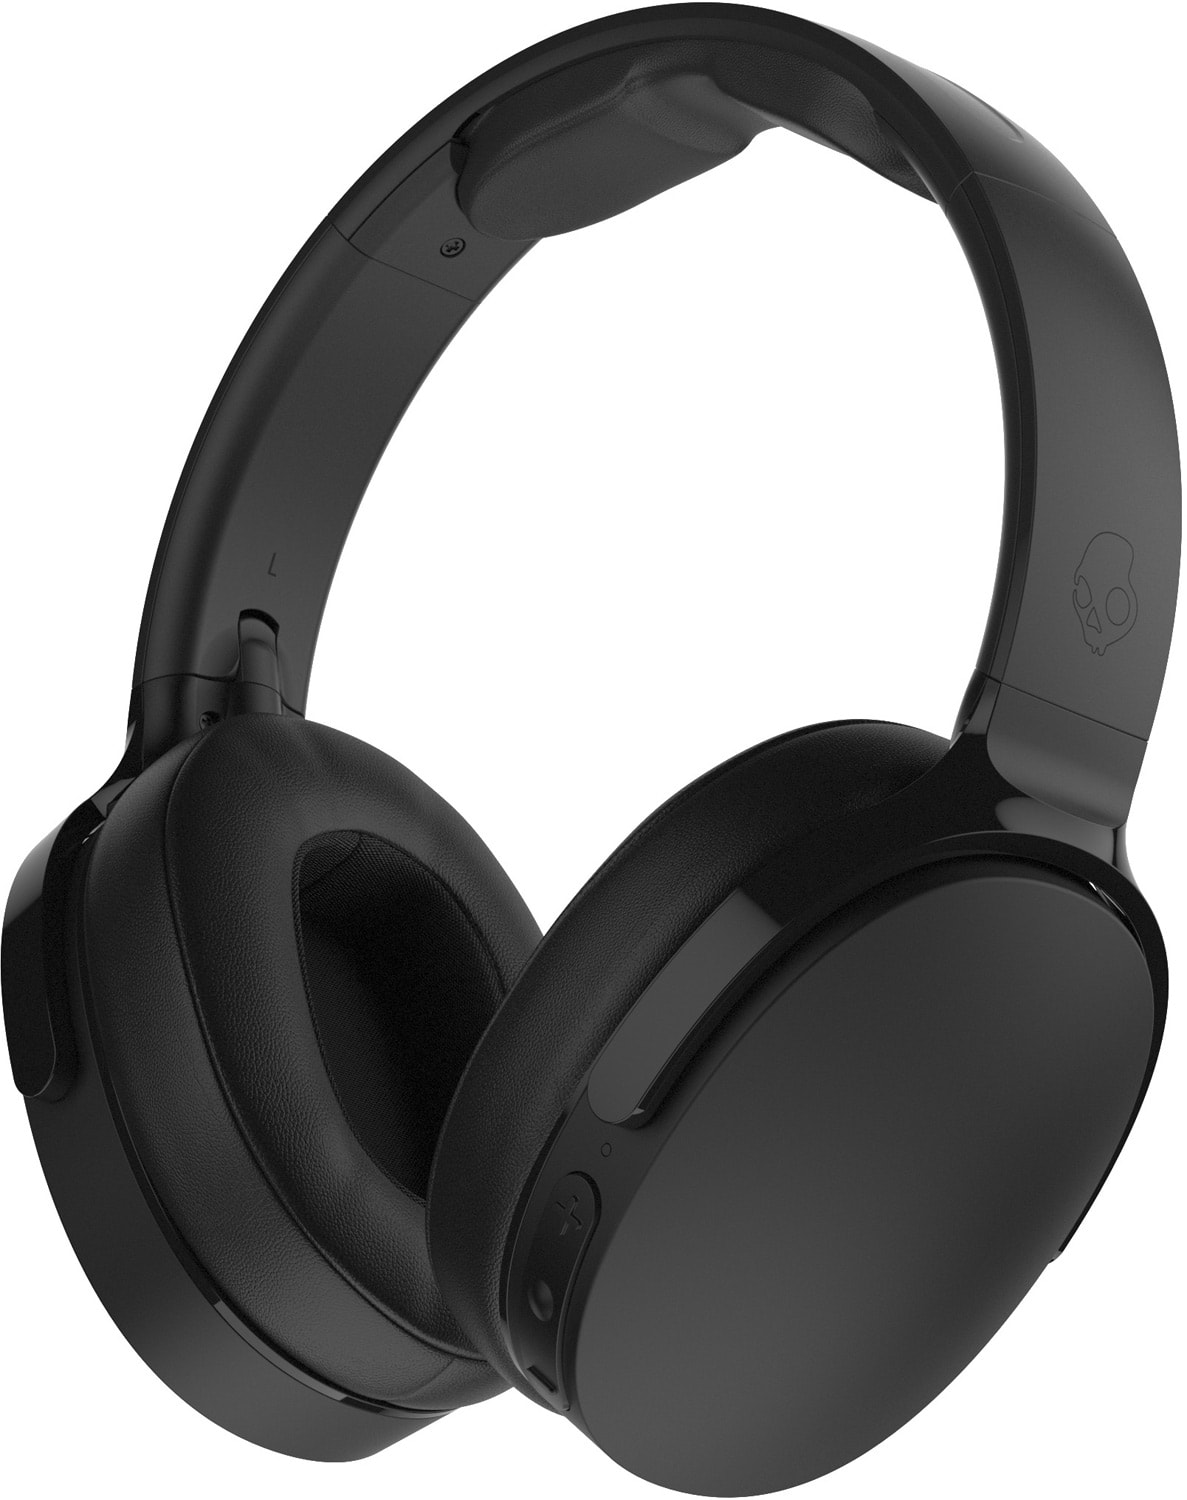 skullcandy-hesh-3-wireless-headphones-black-black-black.jpg